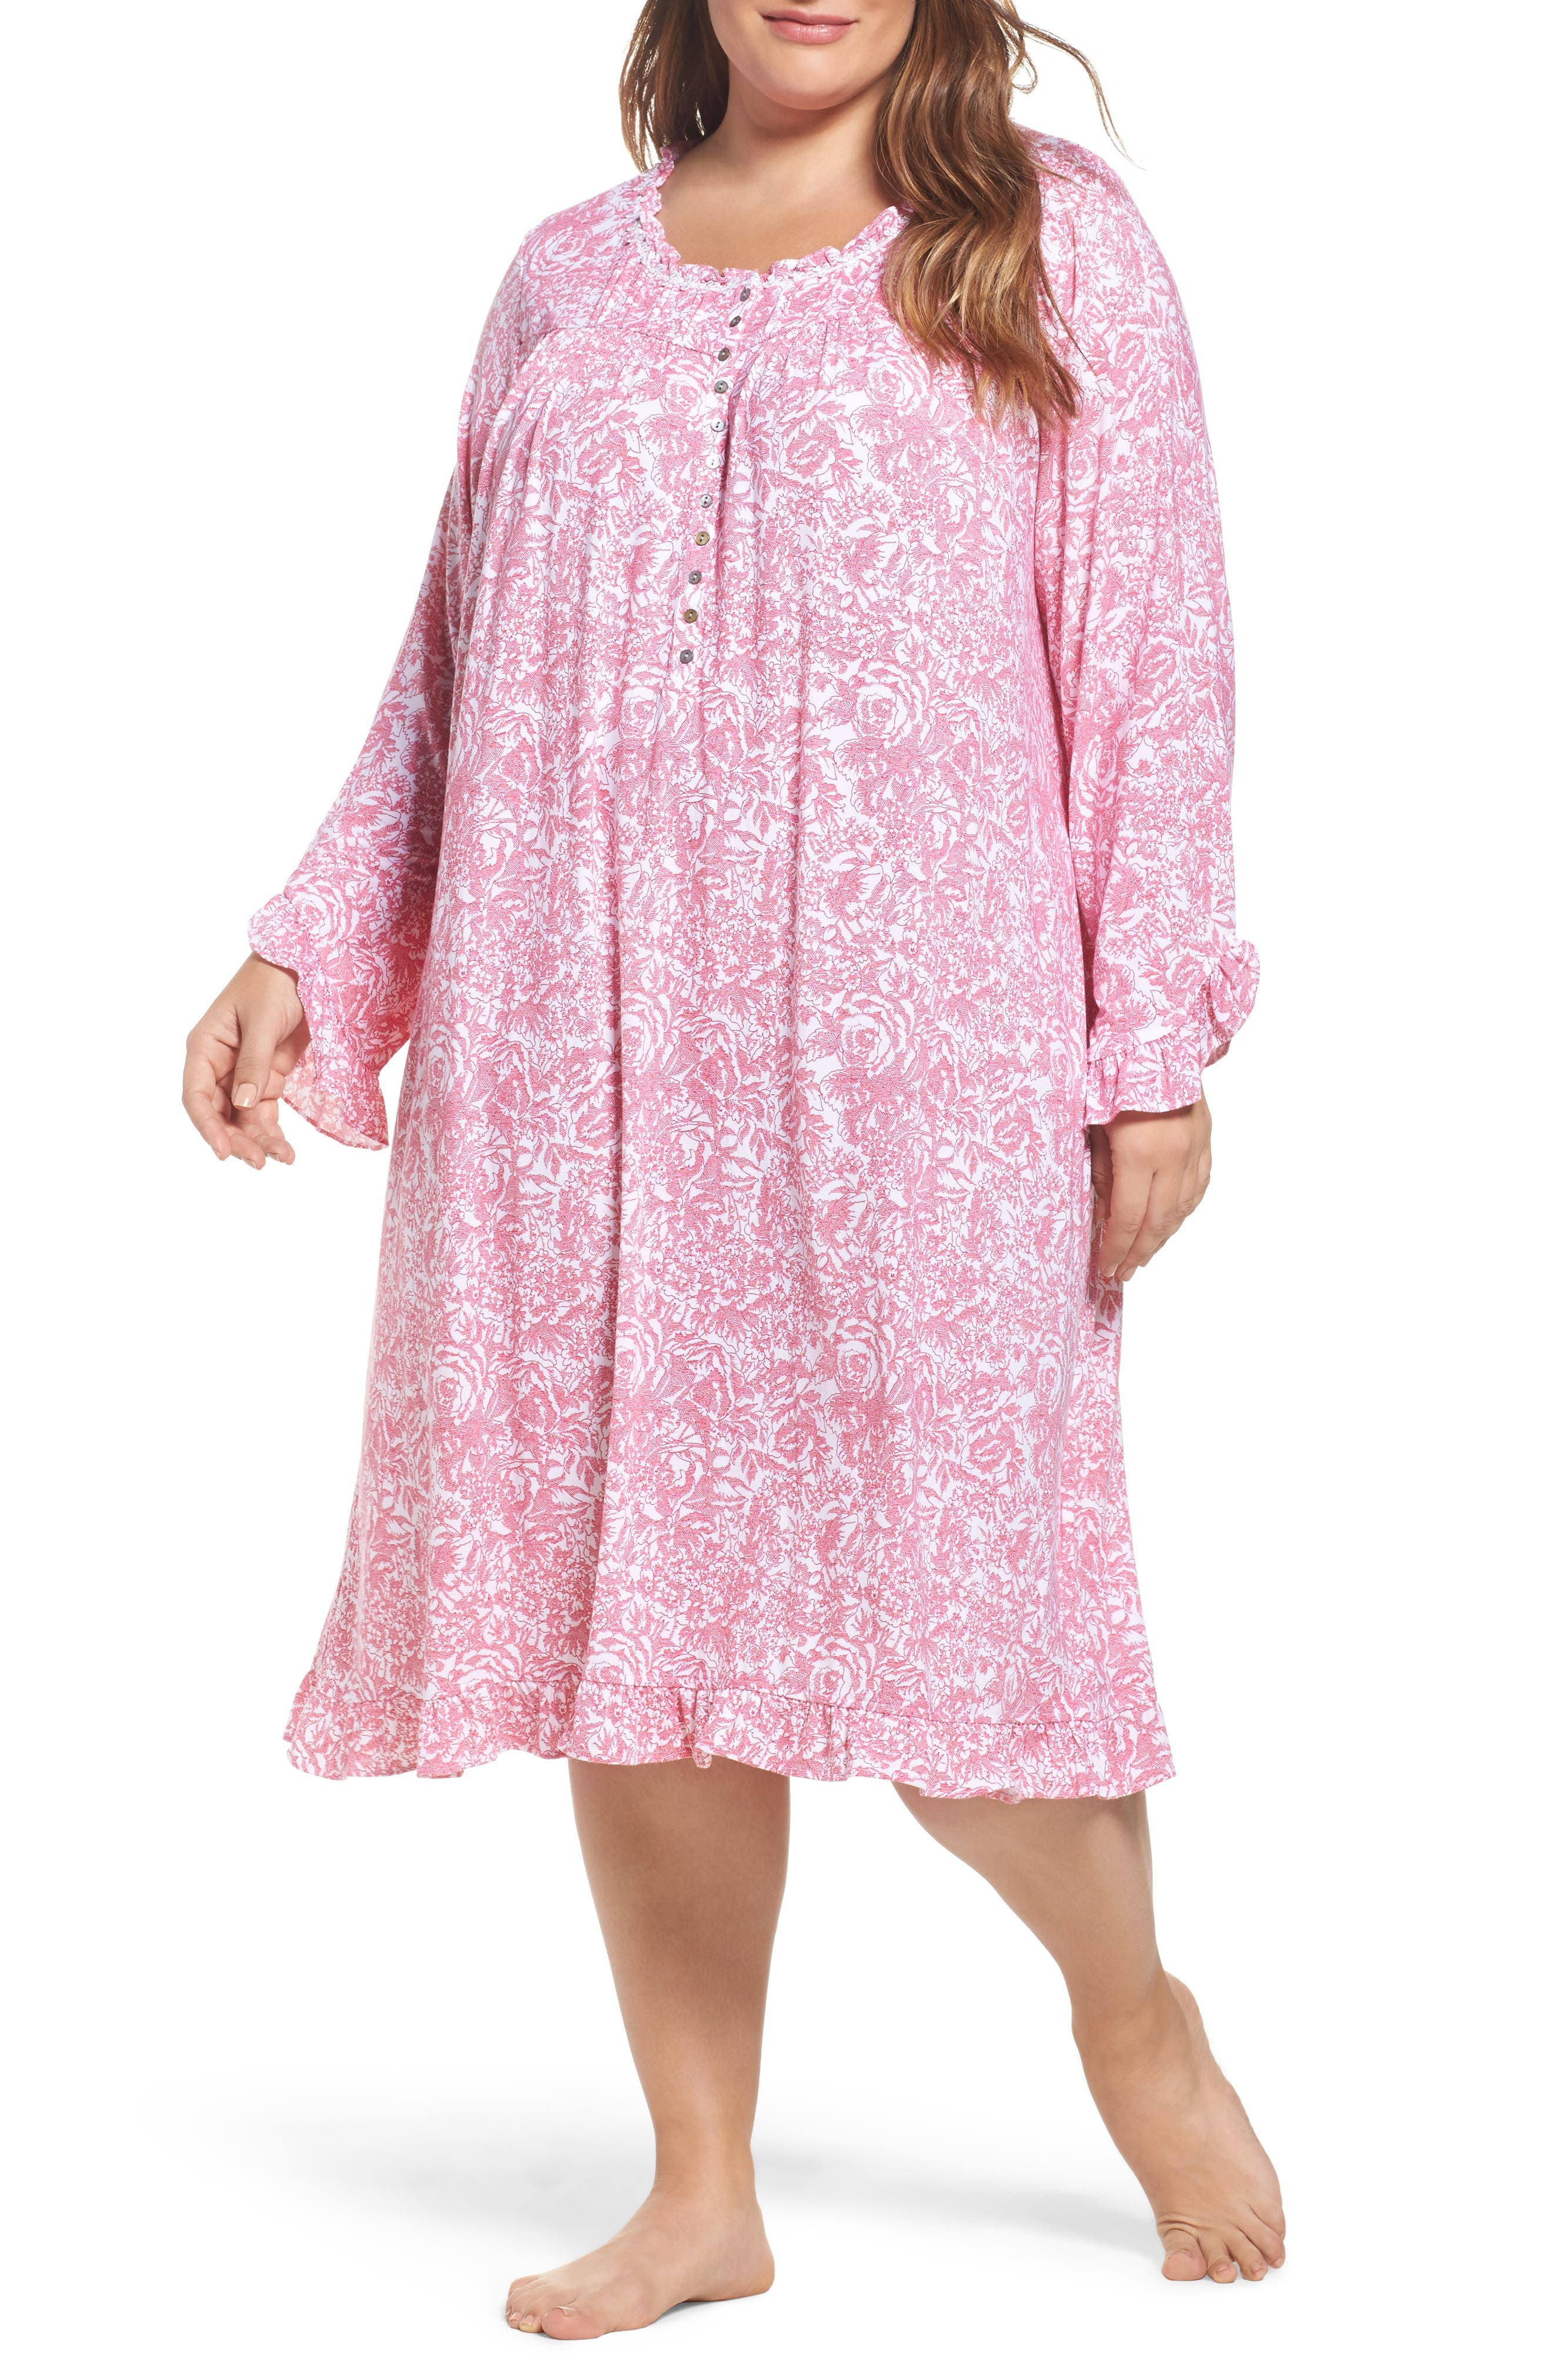 Waltz Stretch Modal Nightgown,                         Main,                         color, White With Red Floral